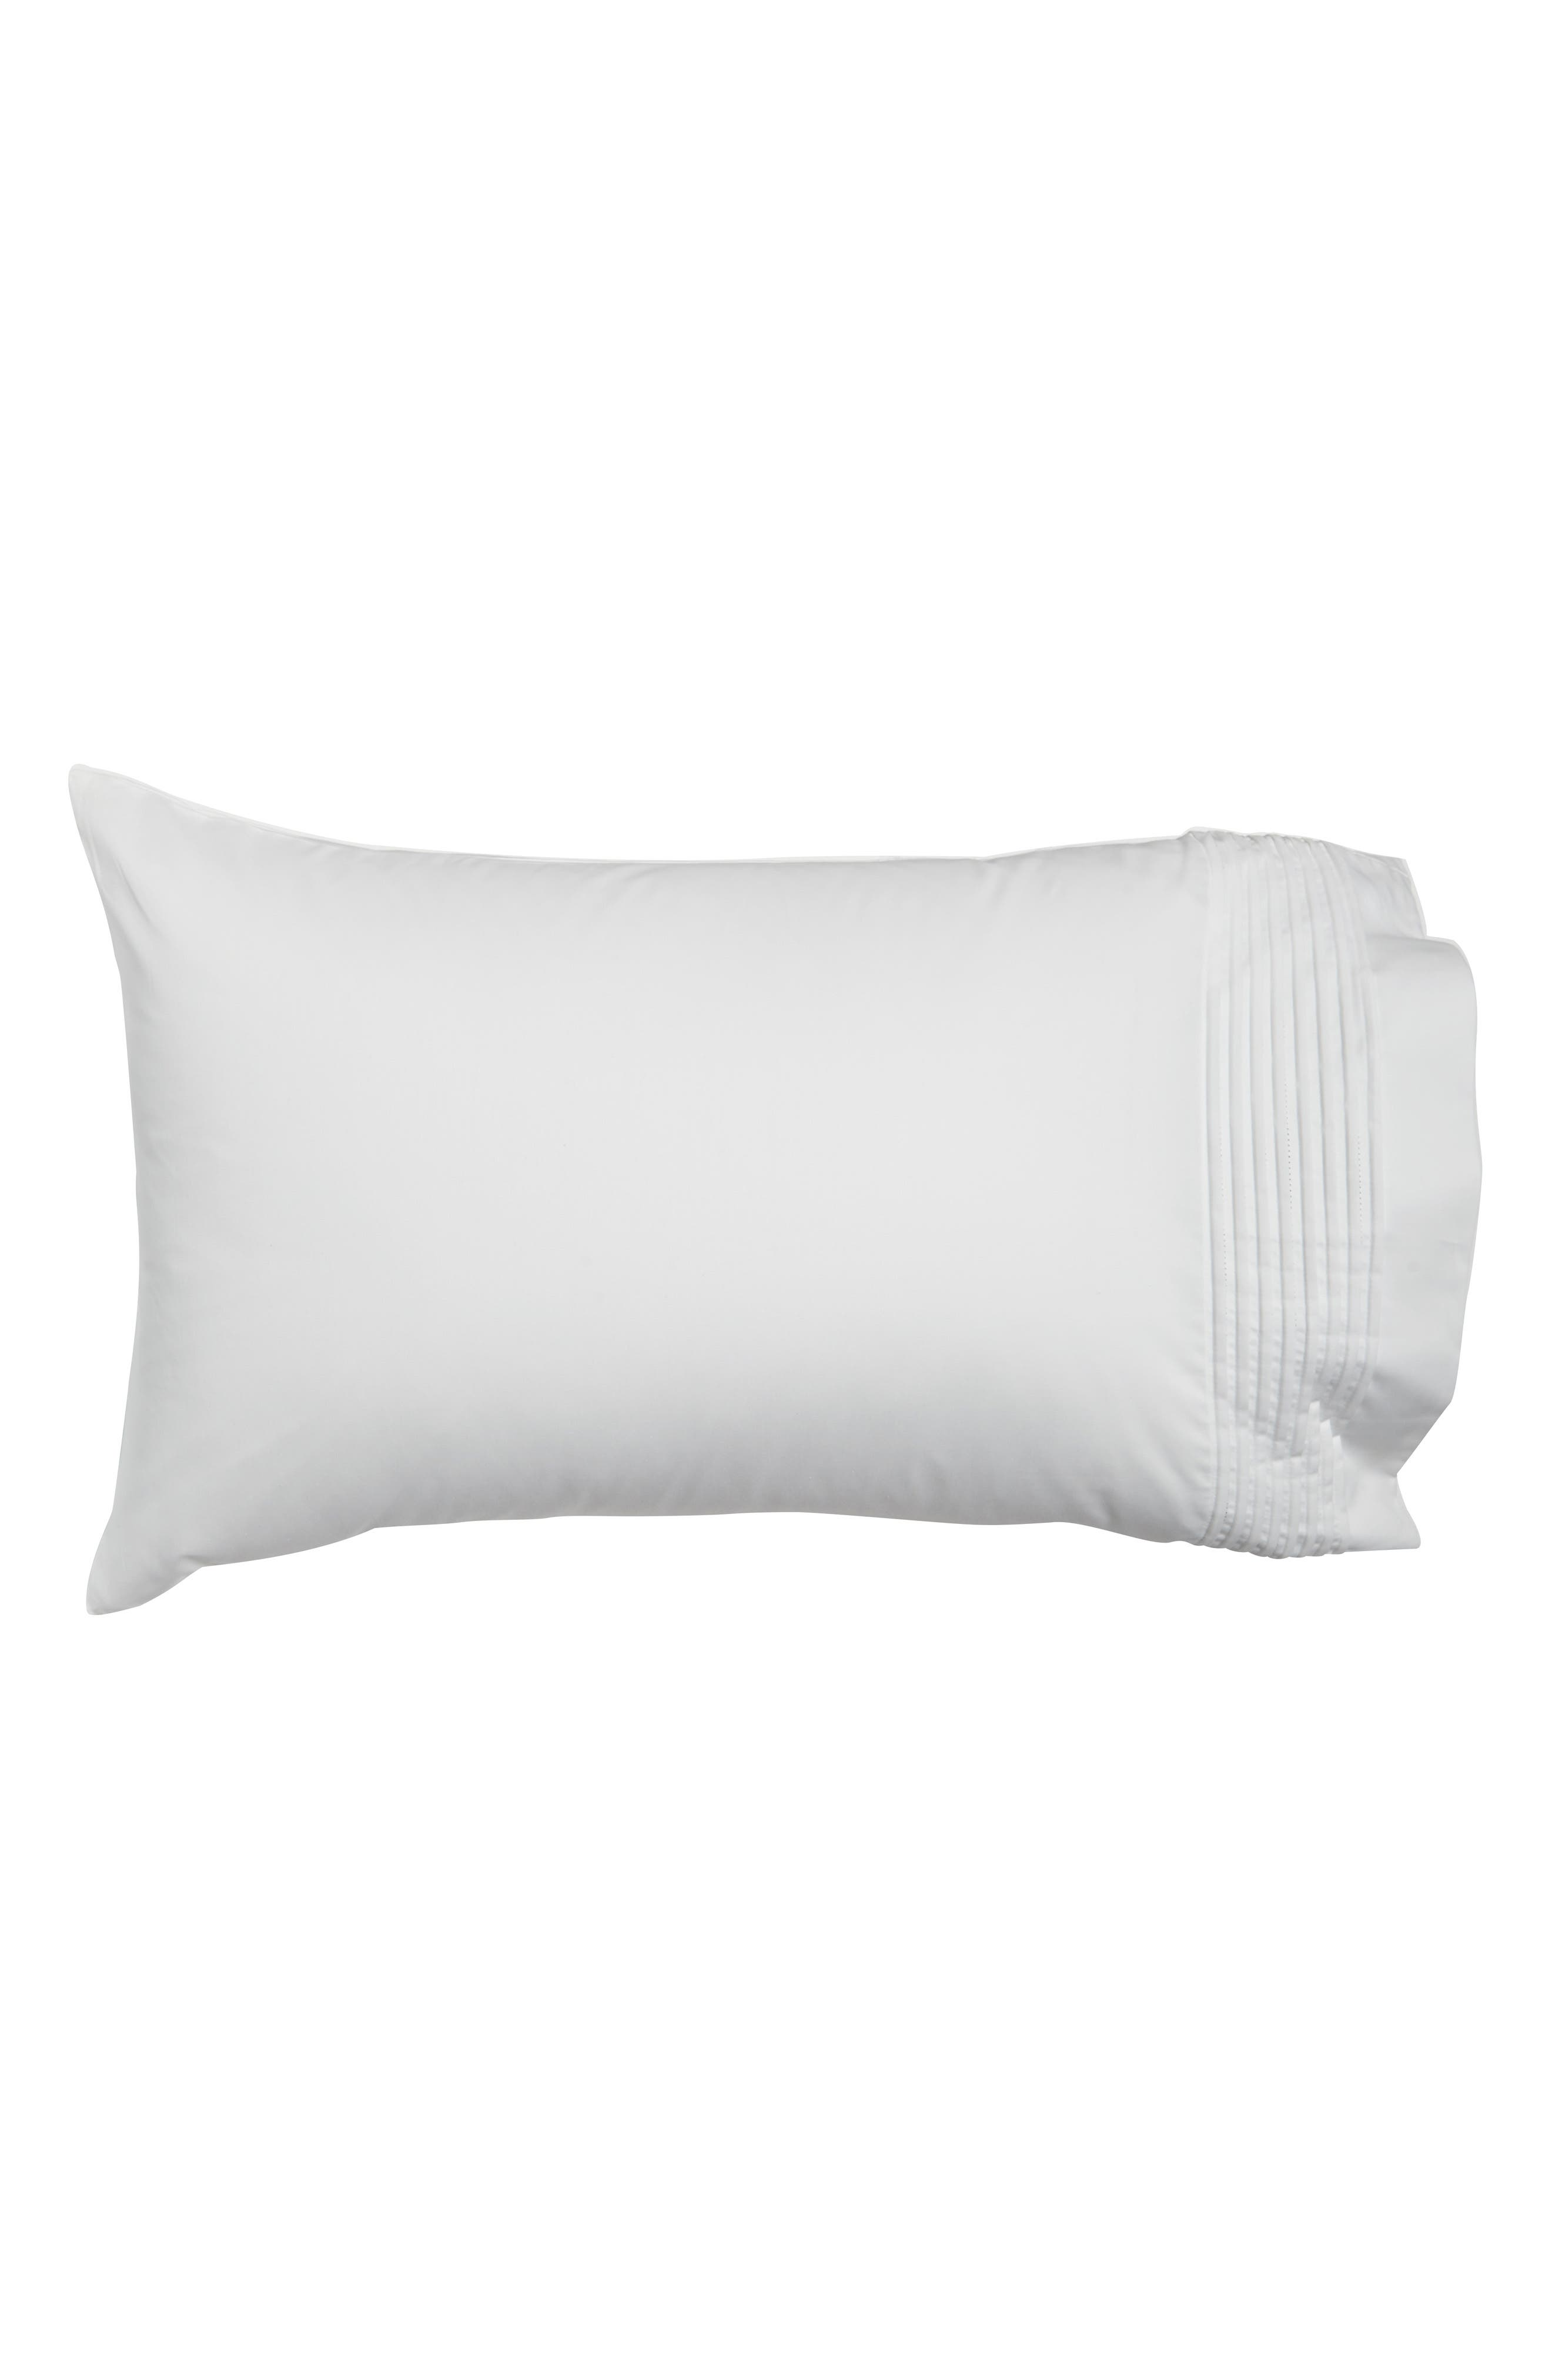 Mirrored Square 400 Thread Count Pillowcases,                         Main,                         color, 100